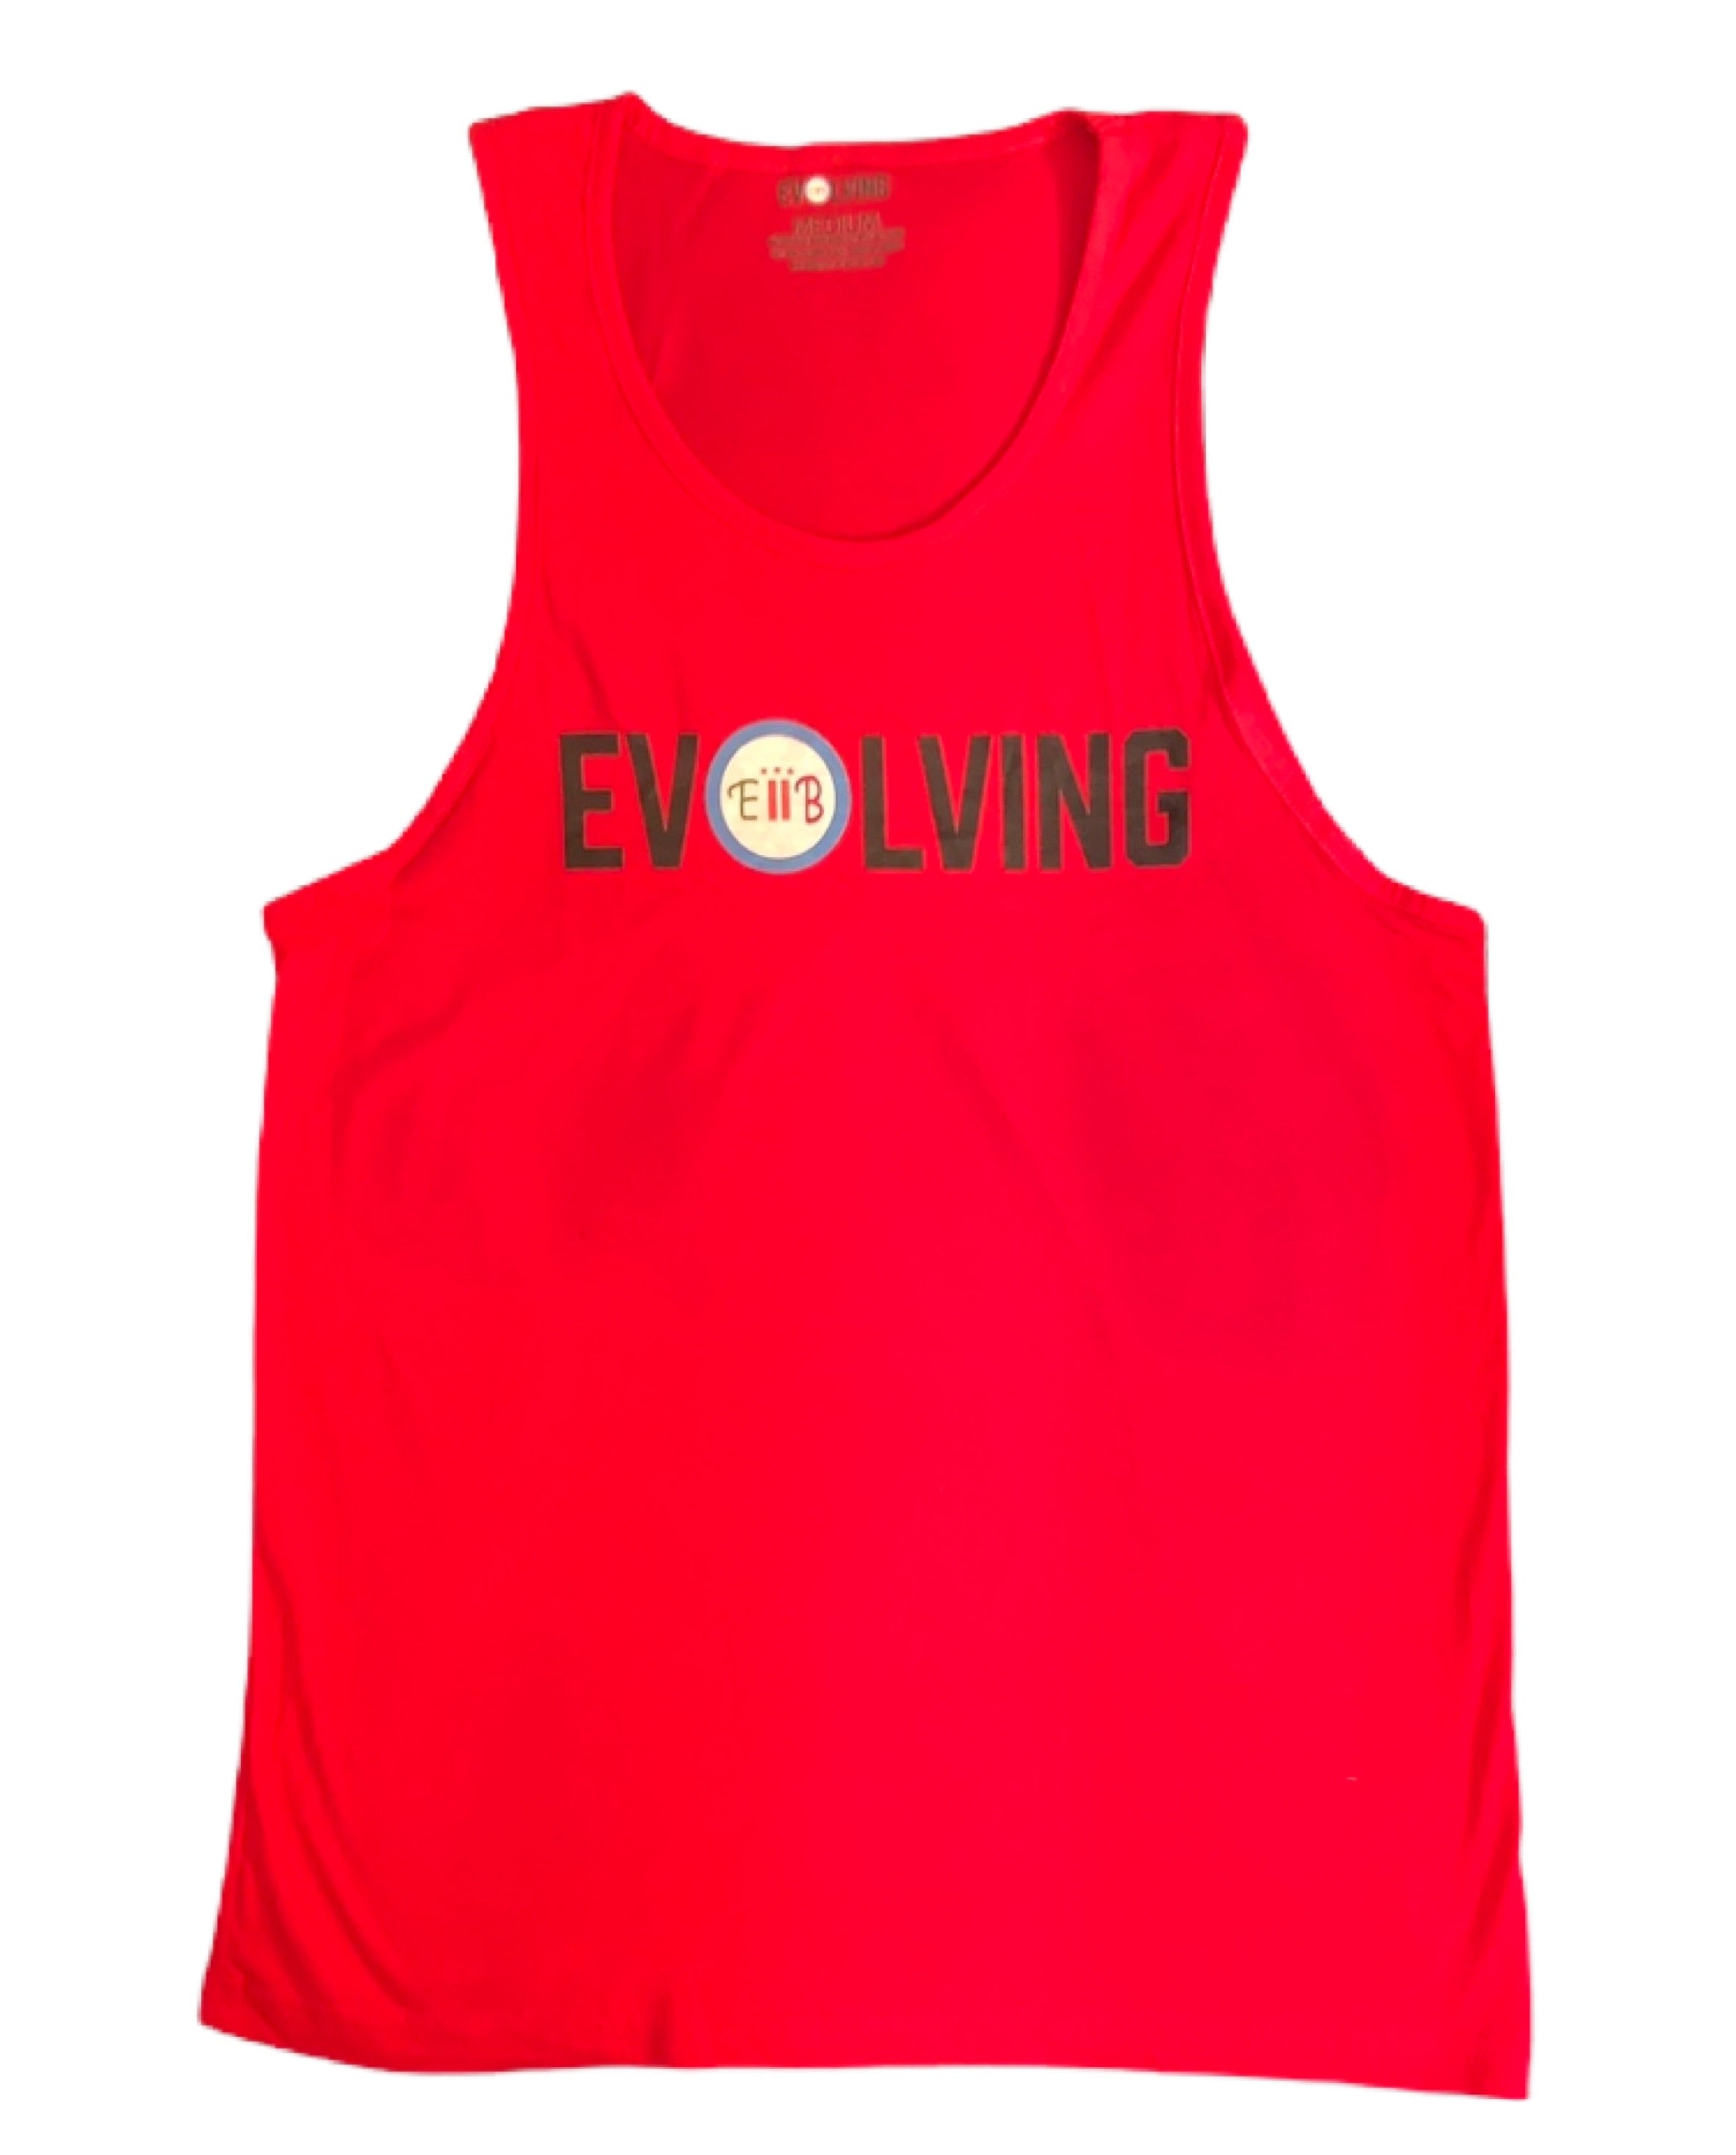 Evolving logo tank top